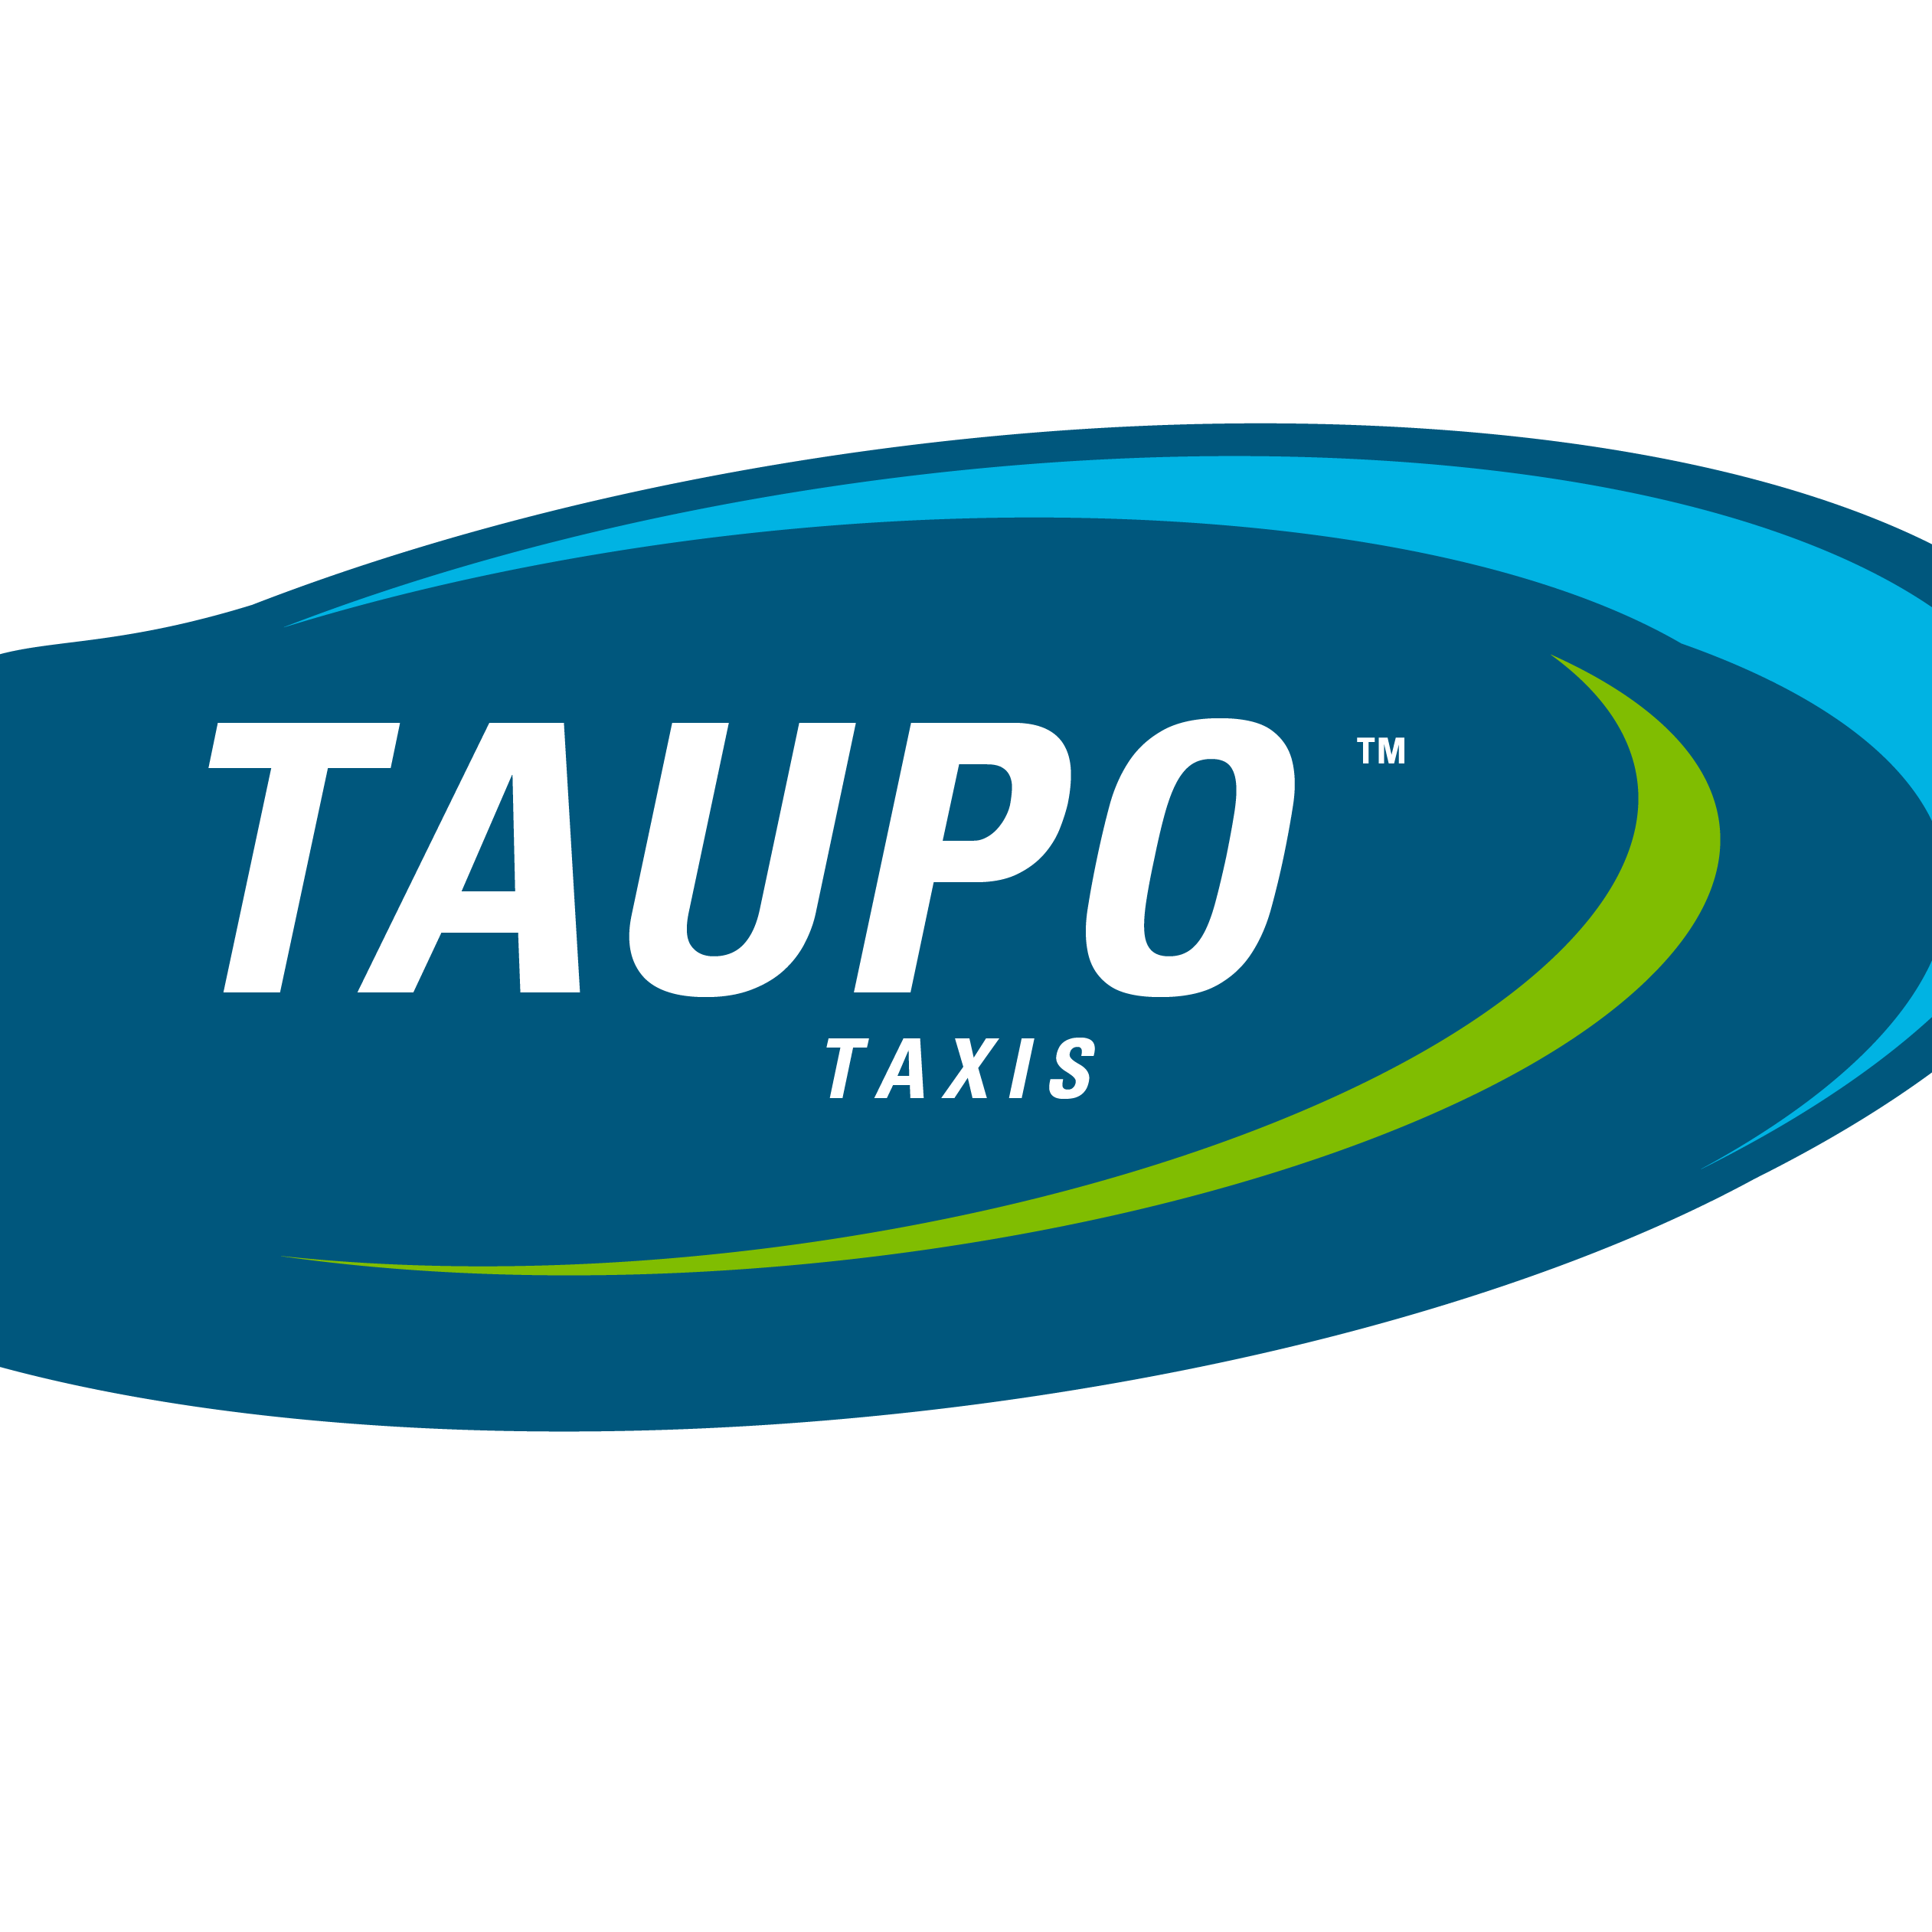 Taupo Taxis